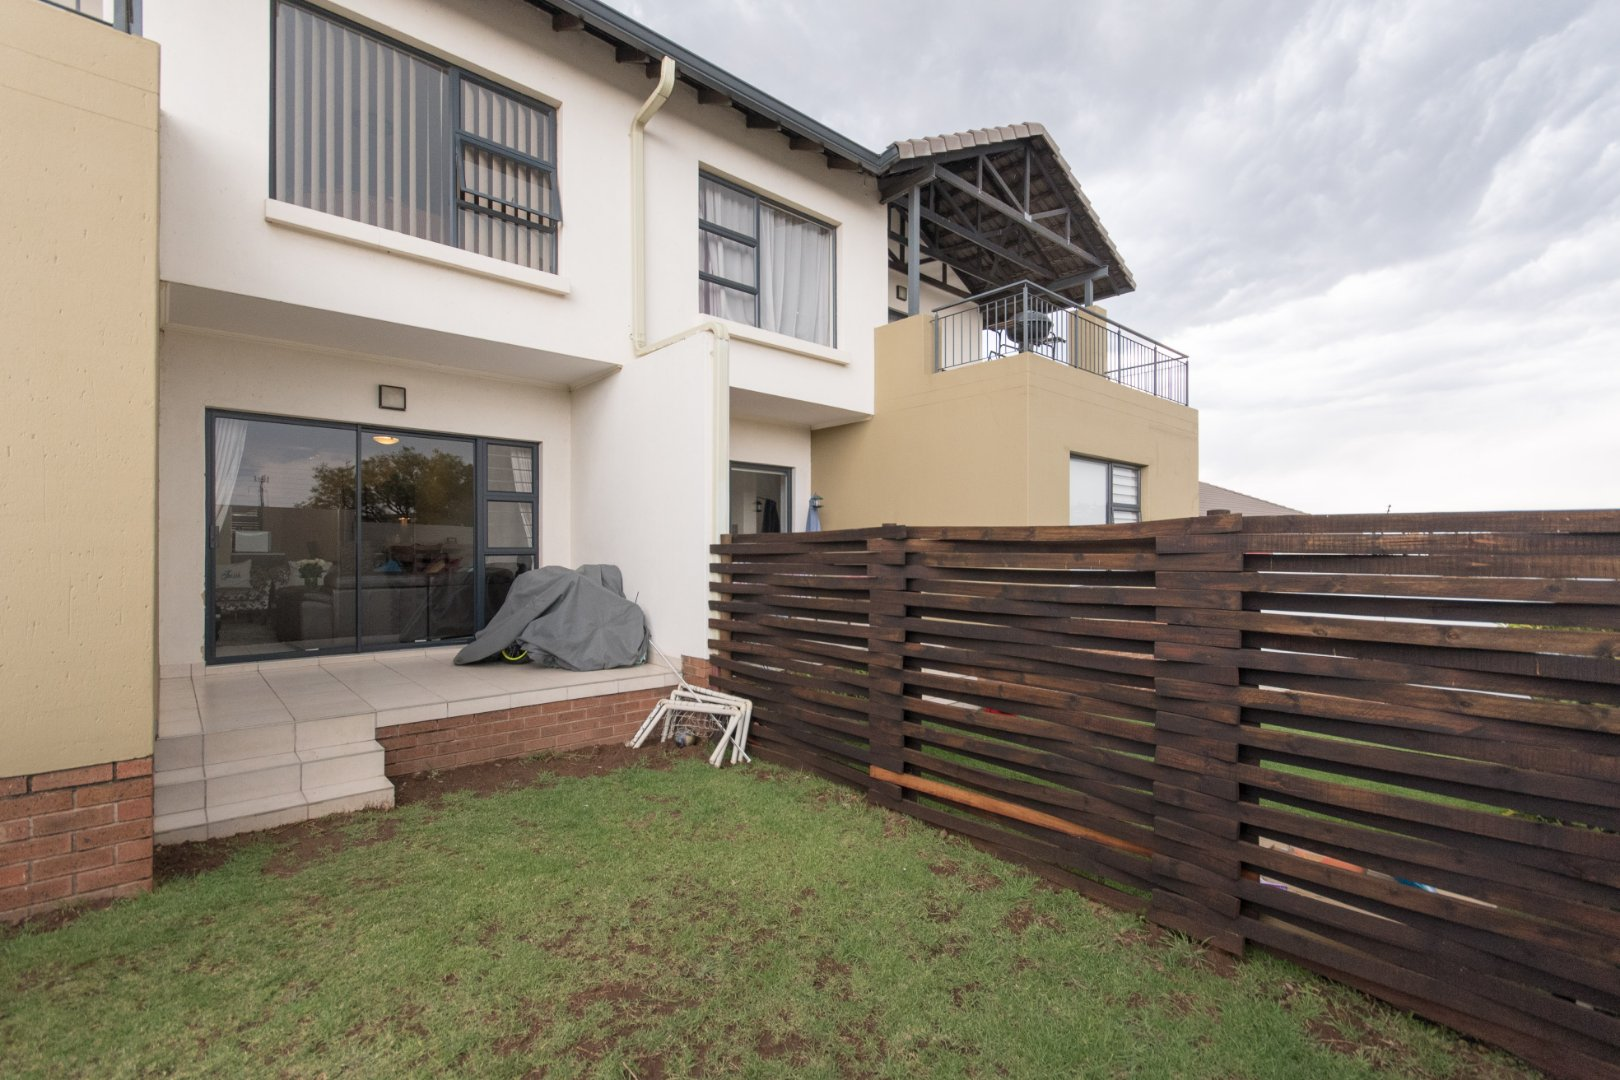 Johannesburg, Gleneagles Property  | Houses For Sale Gleneagles, Gleneagles, Townhouse 3 bedrooms property for sale Price:1,250,000